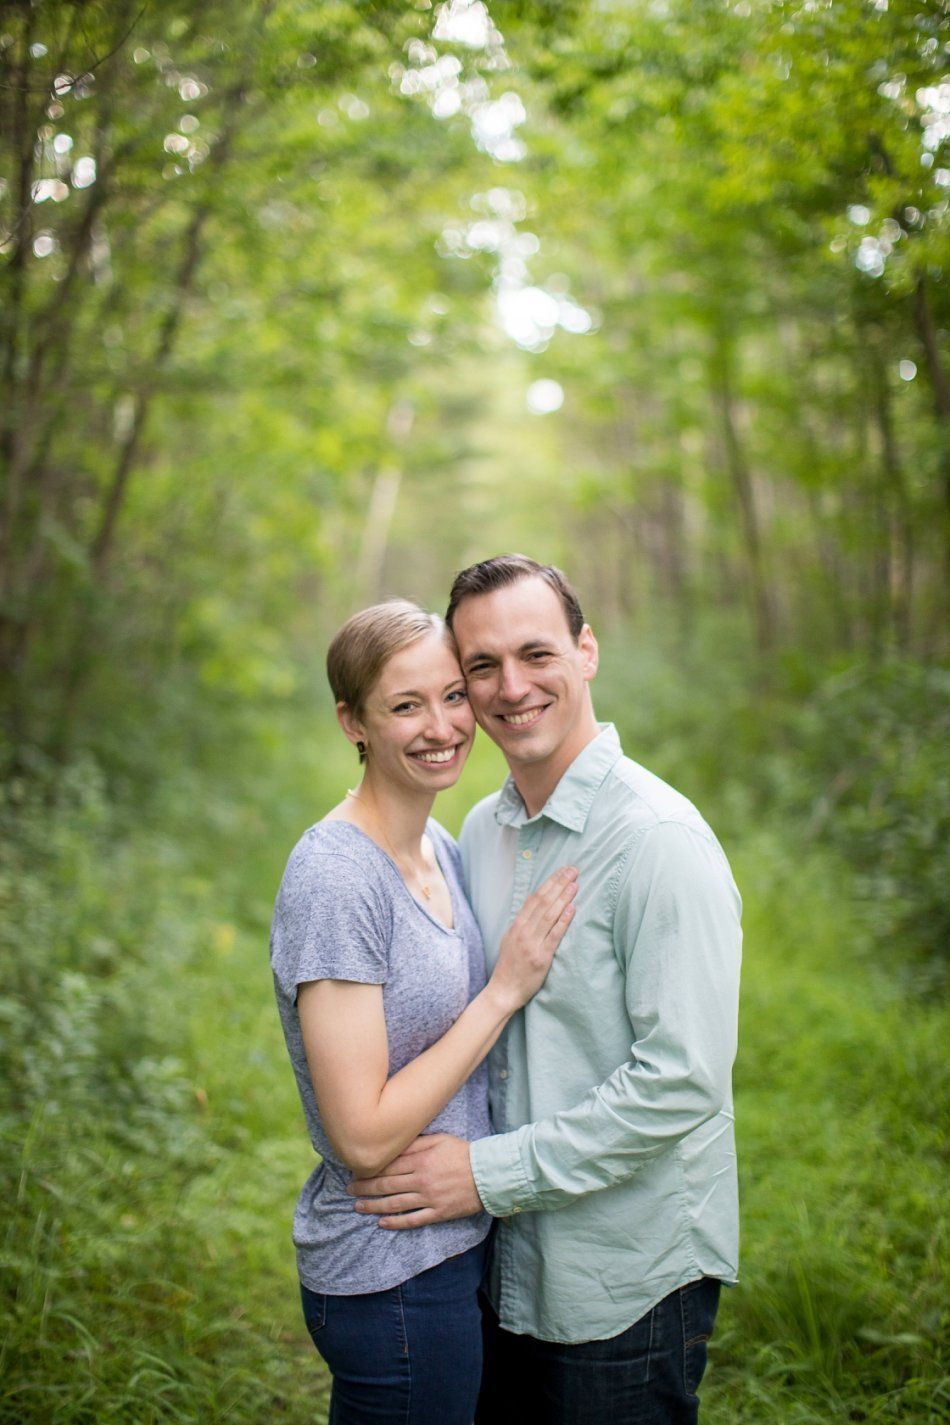 Twin Cities Engagement Photographer - Taylor & Alec (8)